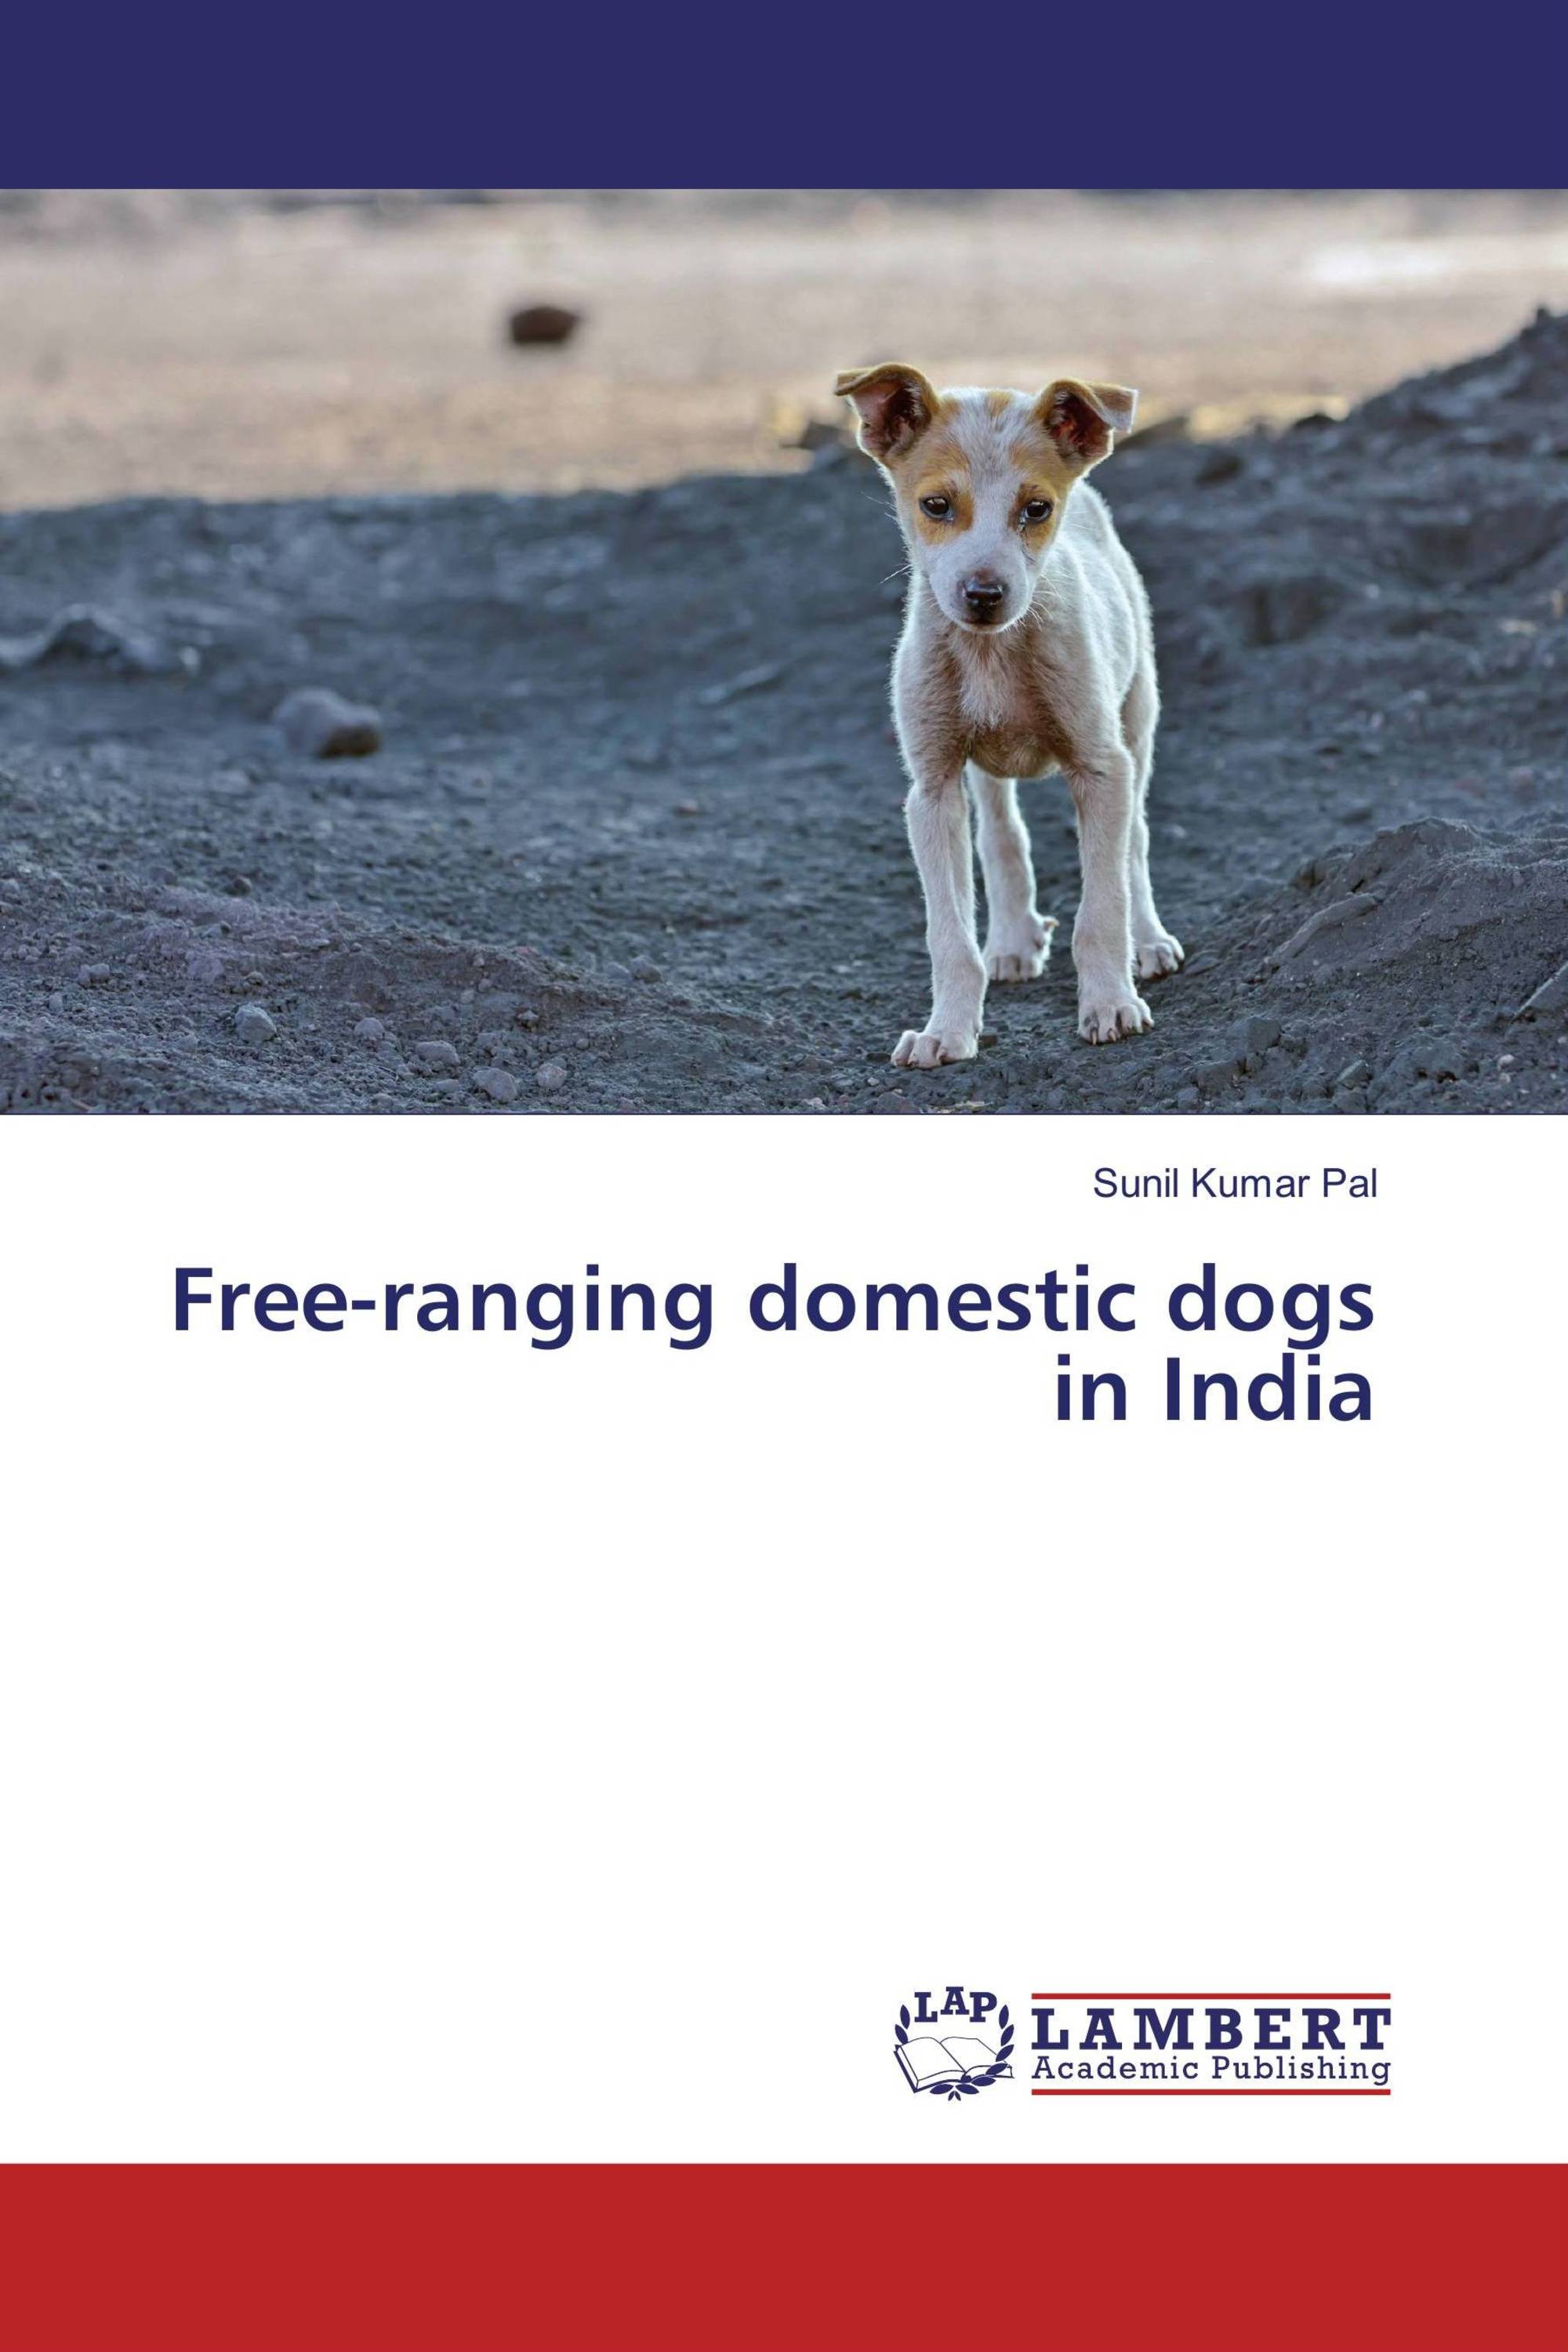 Free-ranging domestic dogs in India